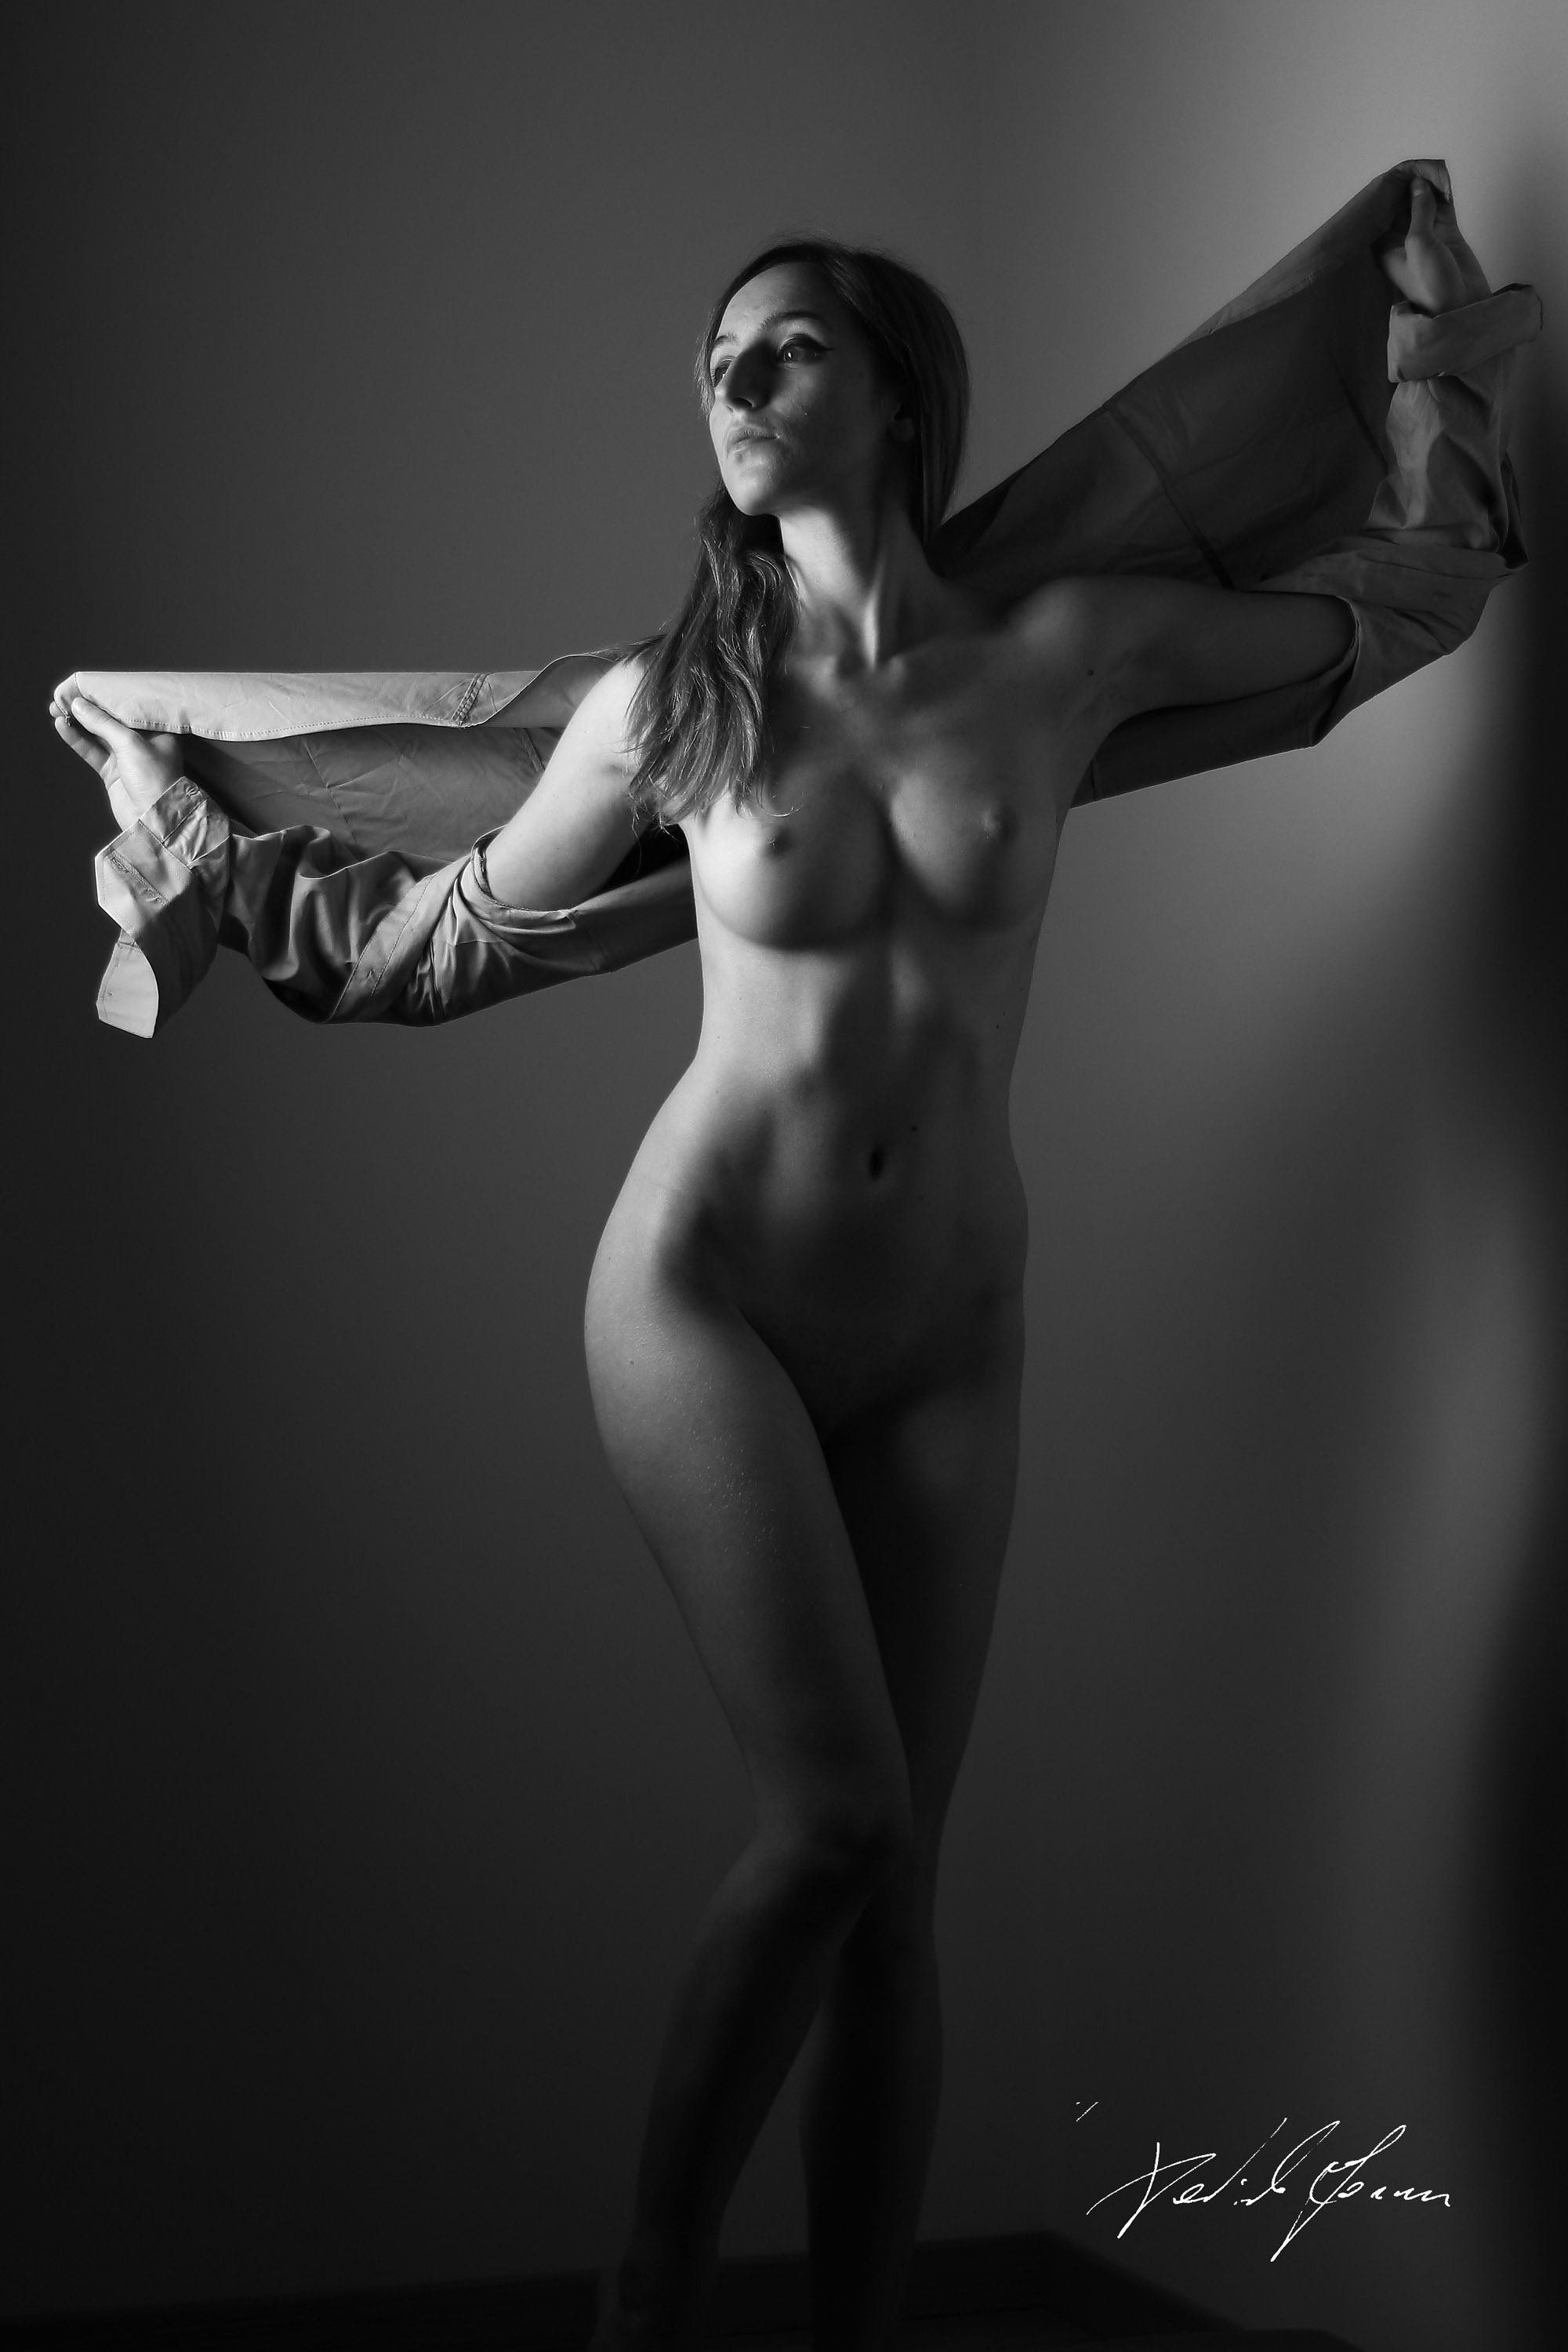 Categories: Boudoir & Nude, Fine Art, Glamour Portrait; Ph. DANIELE FORNER; Model LORENZA DAL LAGO; Location: Treviso (TV)